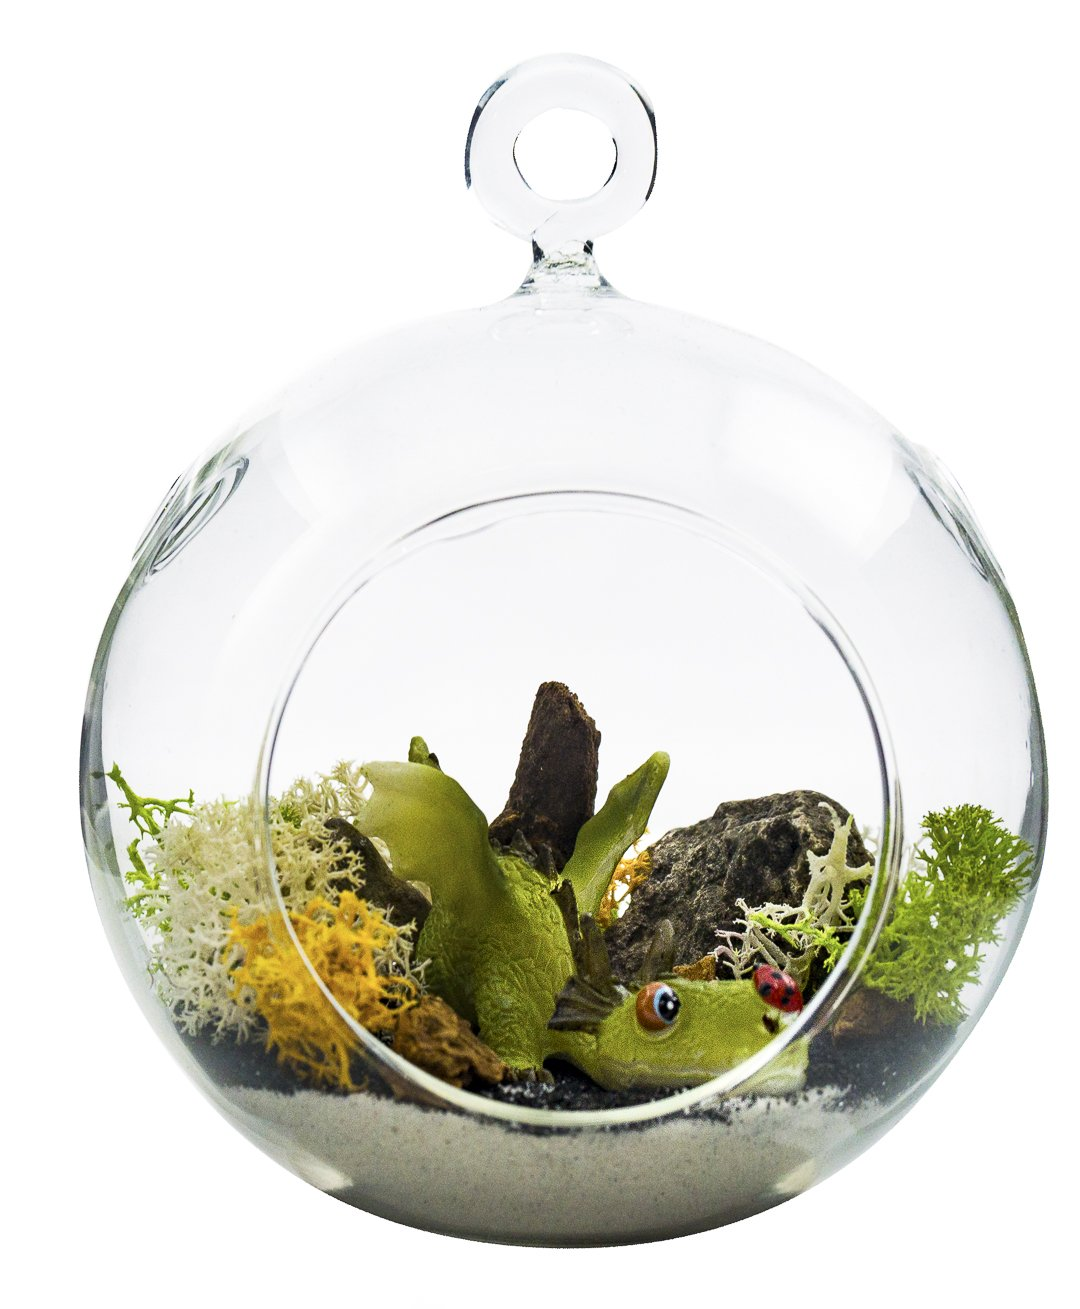 "Terrarium Kit | Ferocious Dragon with Ladybug | Dragon Series | Complete Terrarium Gift Set | 4"" Glass Globe Terrarium Container 